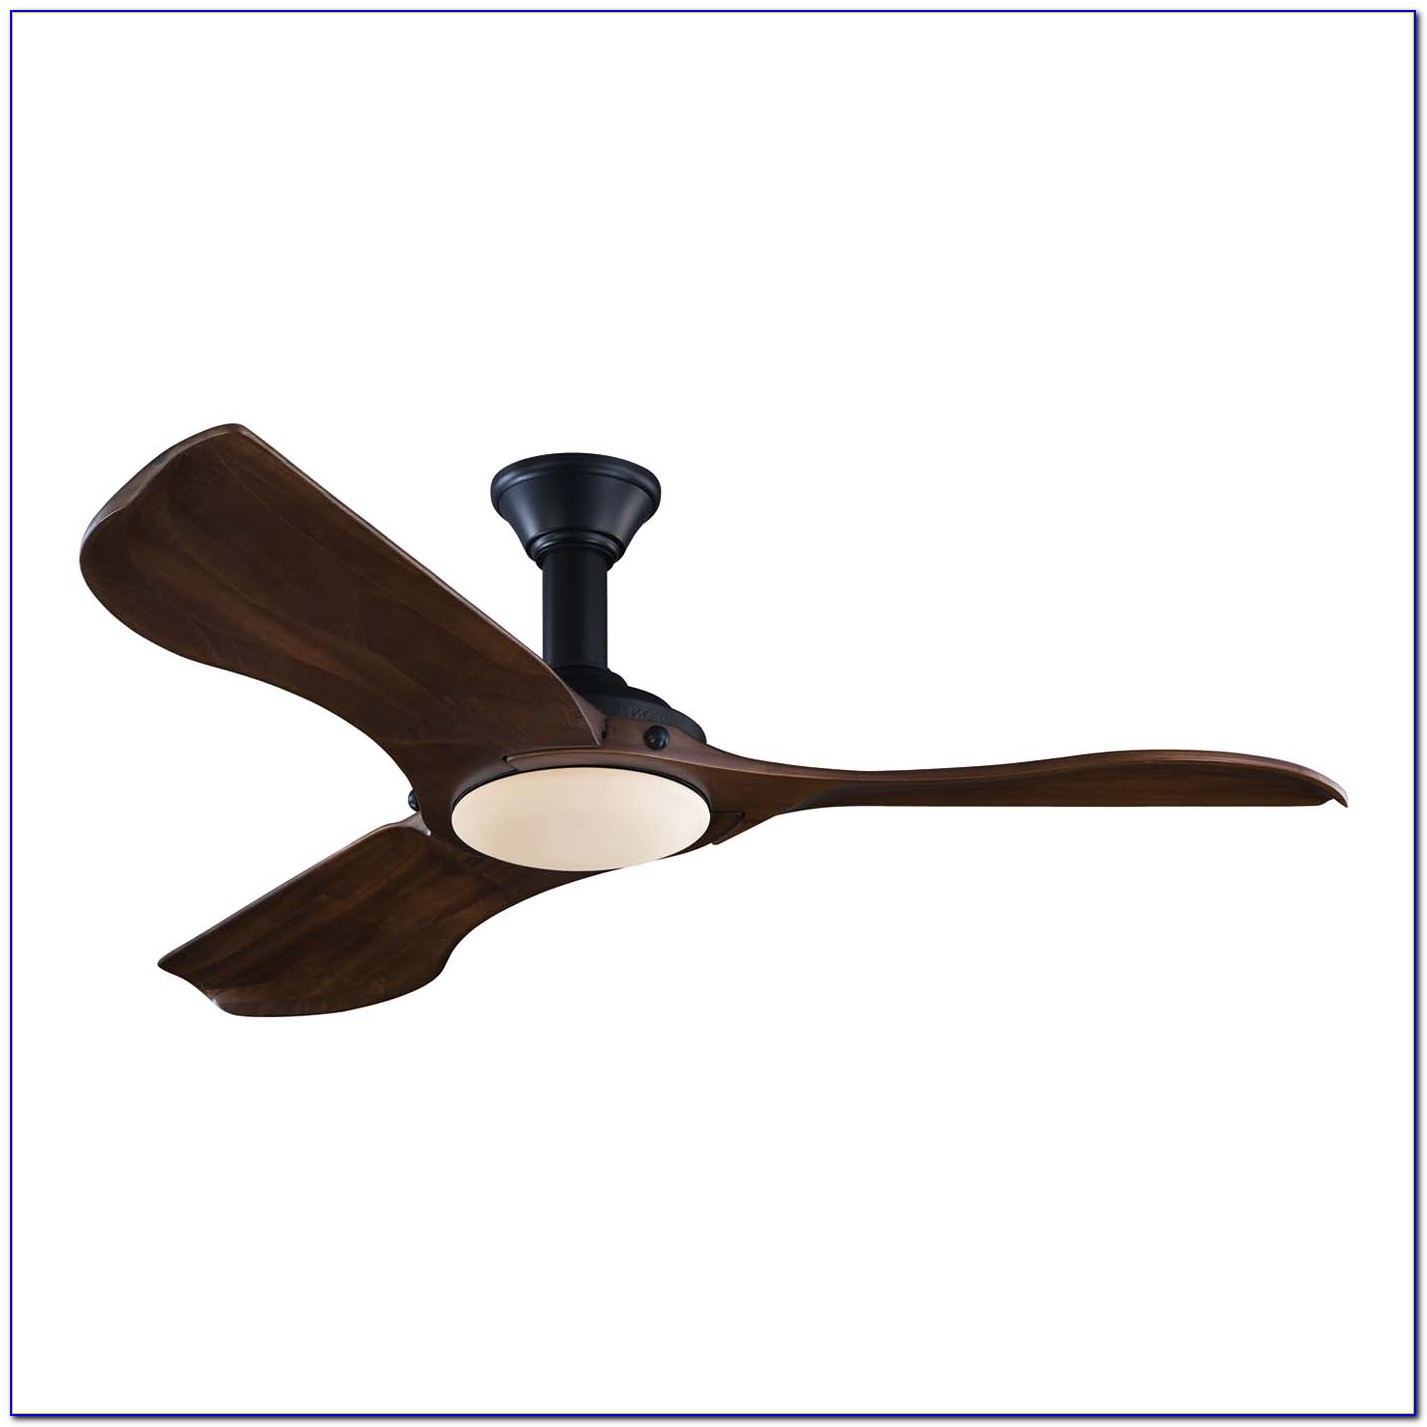 Monte Carlo Ceiling Fan Remote